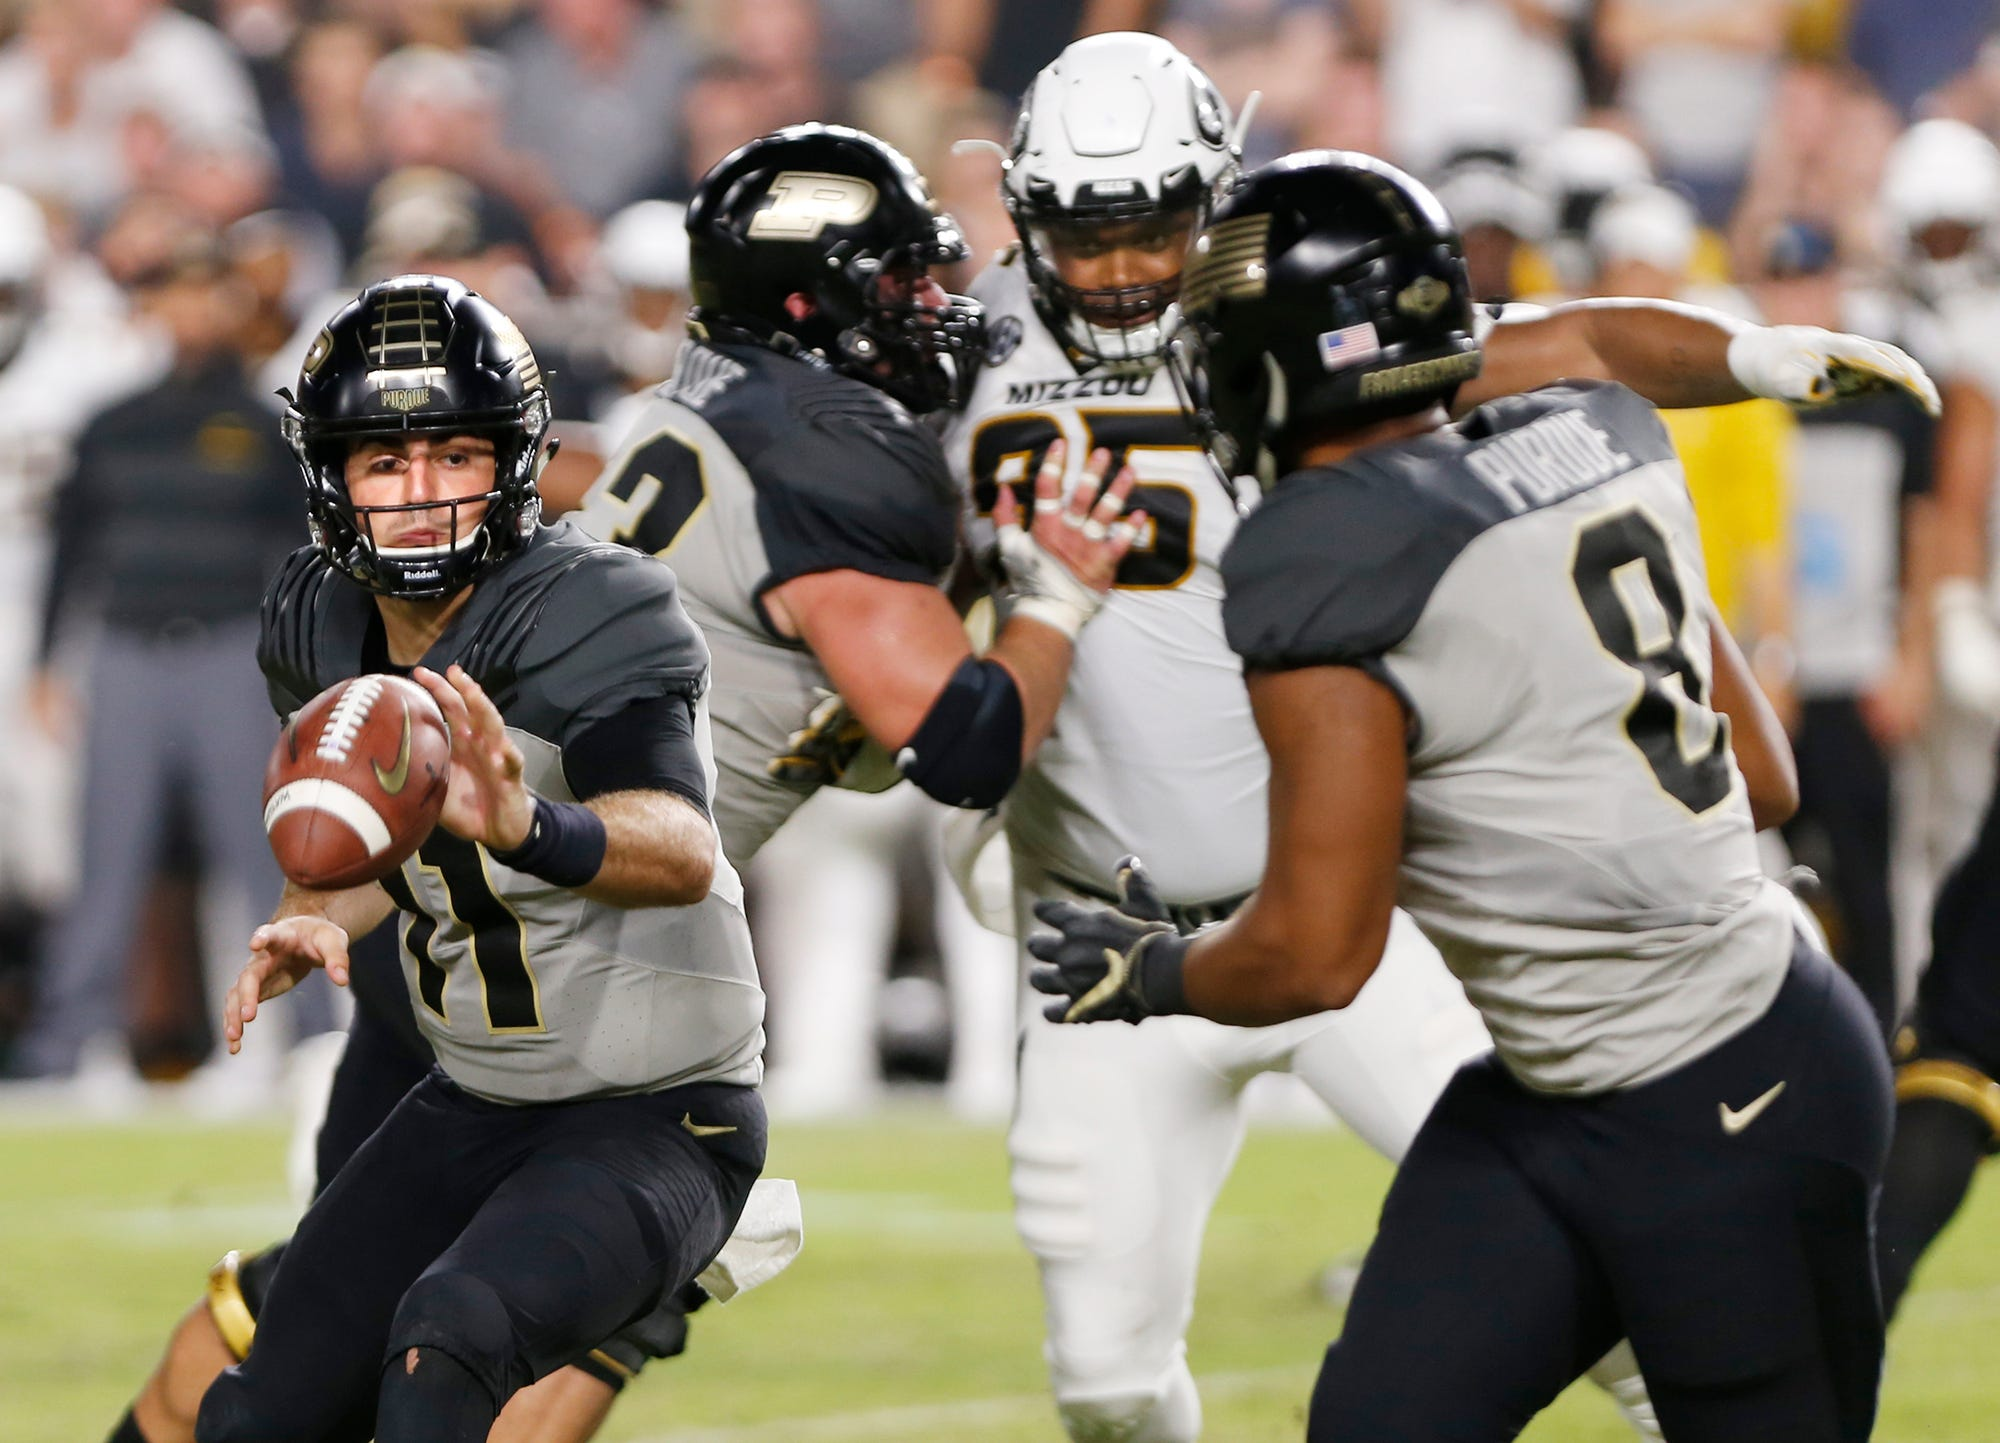 Purdue quarterback David Blough with an option pitch to Markell Jones in the second half Saturday, September 15, 2018, in West Lafayette. Purdue lost 40-37 on a Missouri field goal as time expired. Missouri defeated Purdue 40-37 on Tucker McCann's field goal as time expired.